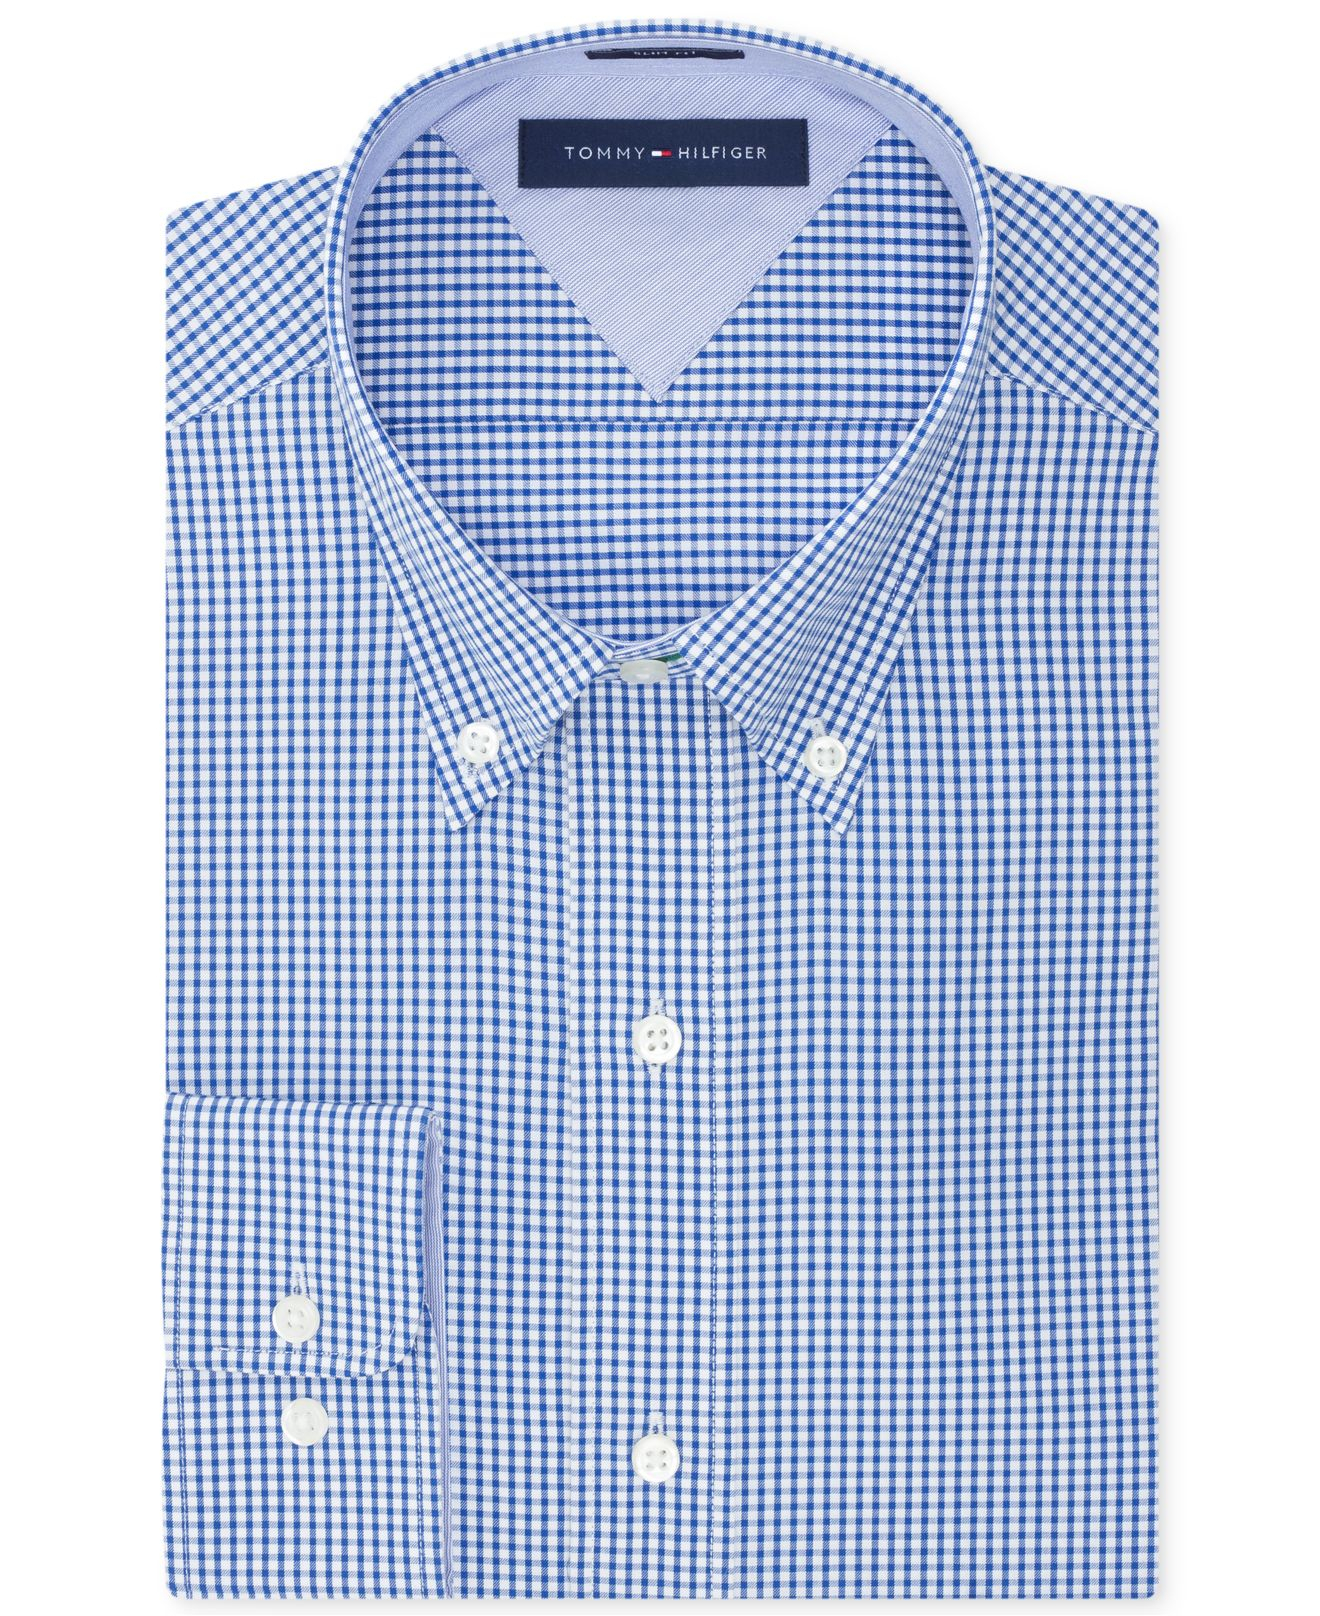 Tommy Hilfiger Easy Care Slim Fit Navy Gingham Dress Shirt